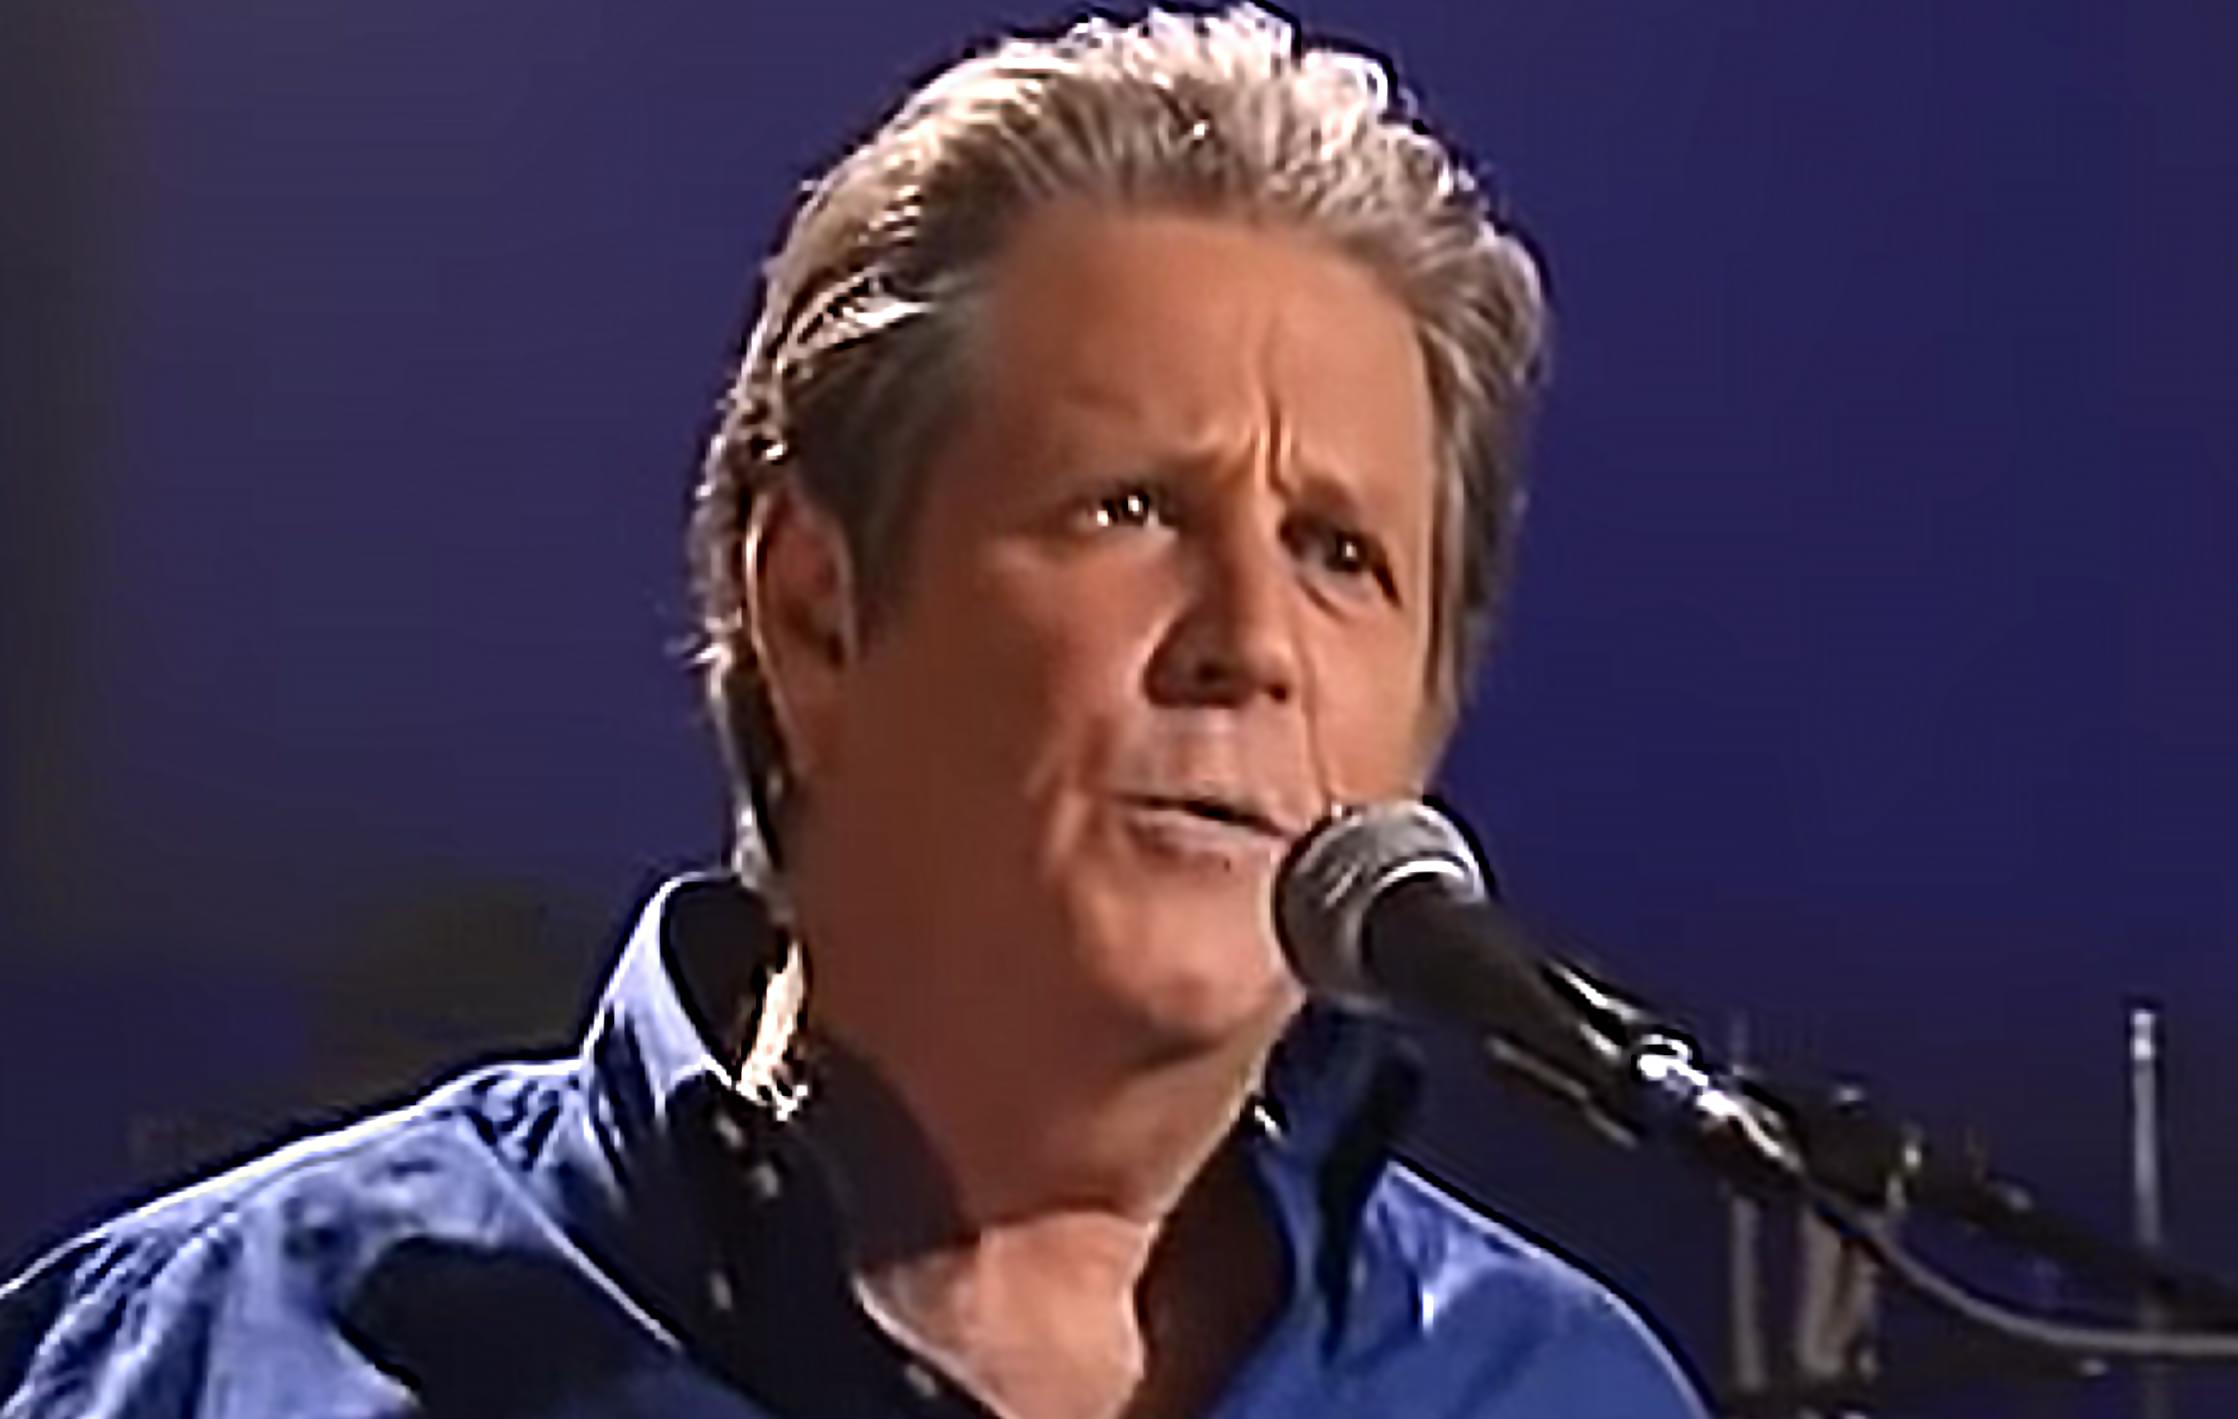 Brian Wilson postpones spring tour due to mental issues